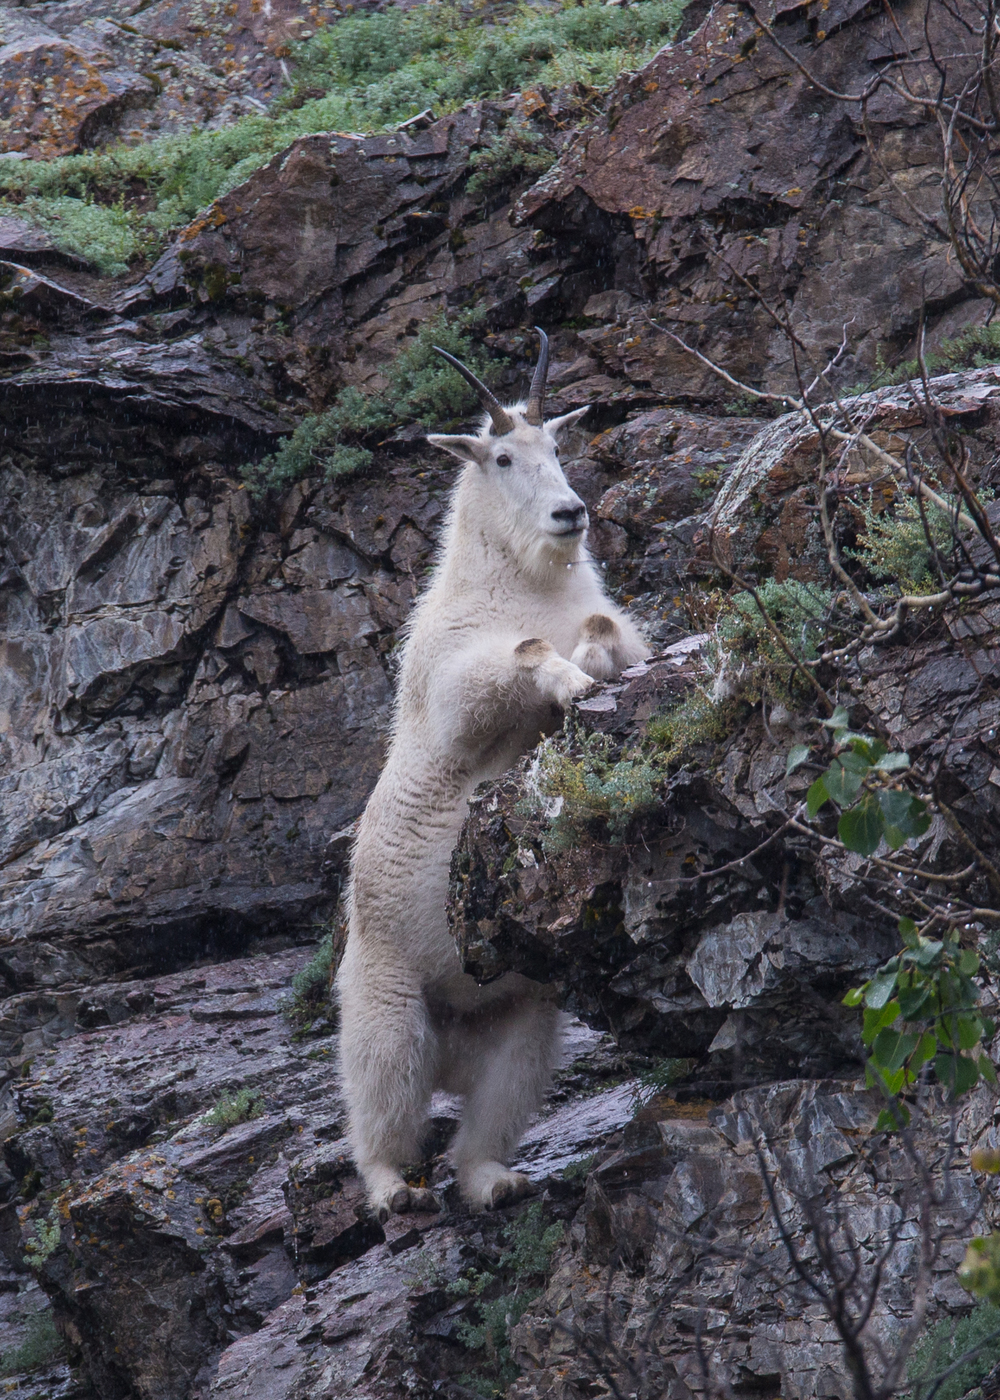 Mountain goat doing what he does best!